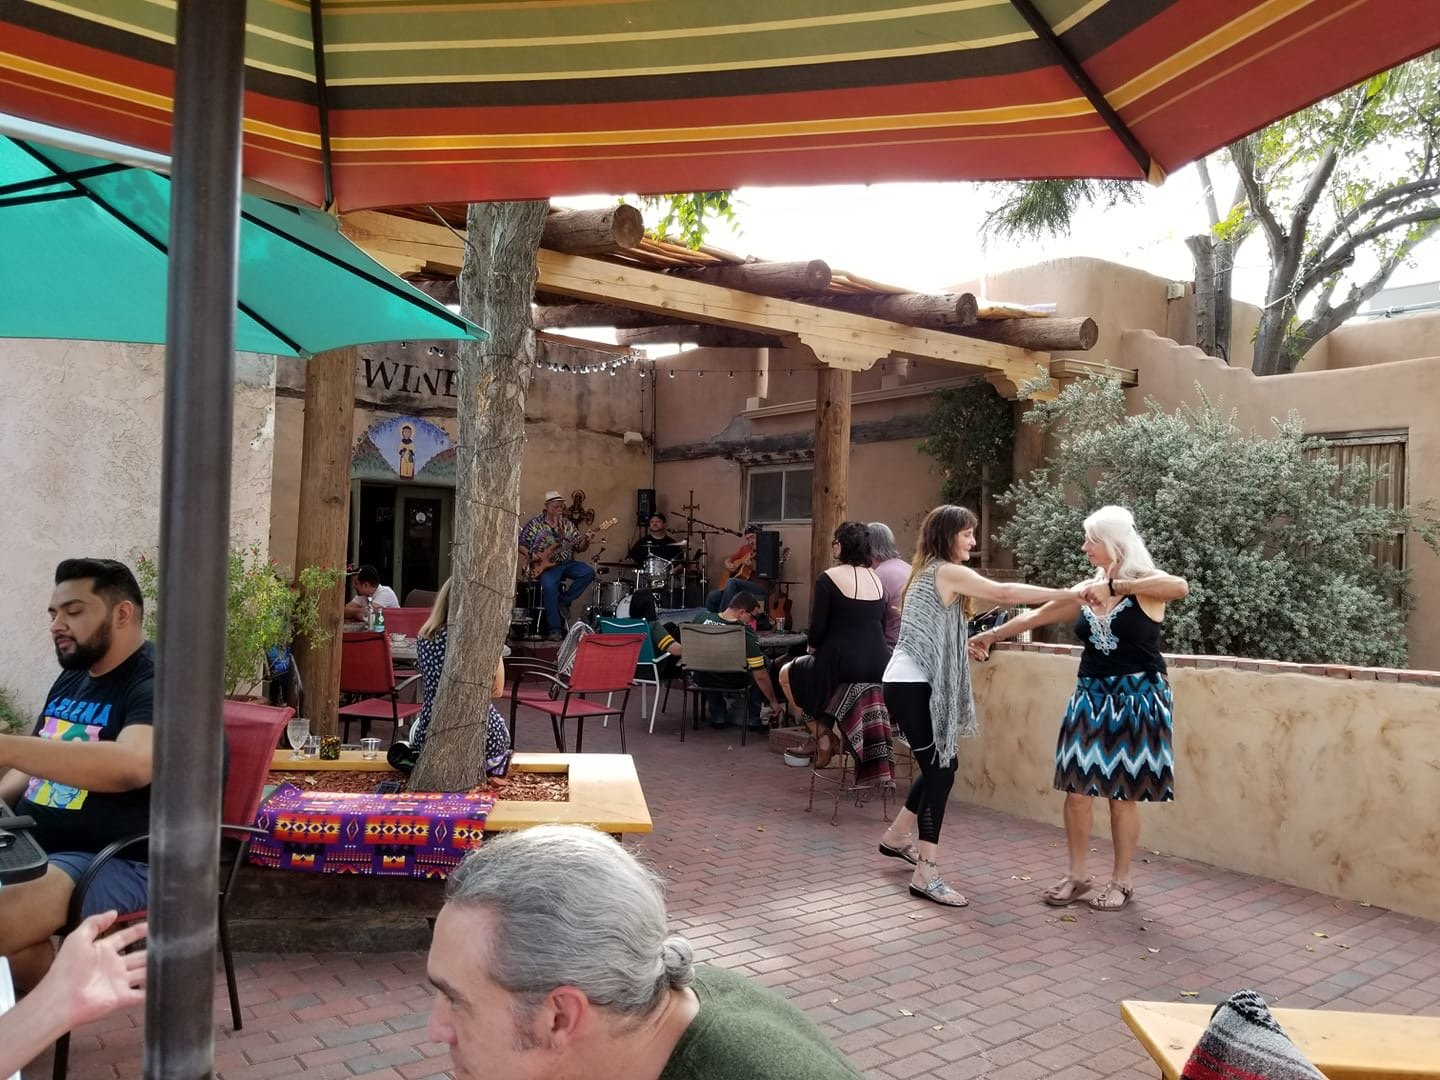 Customers enjoy live music on NM Vintage Wine's new, expanded patio on a Sunday afternoon.